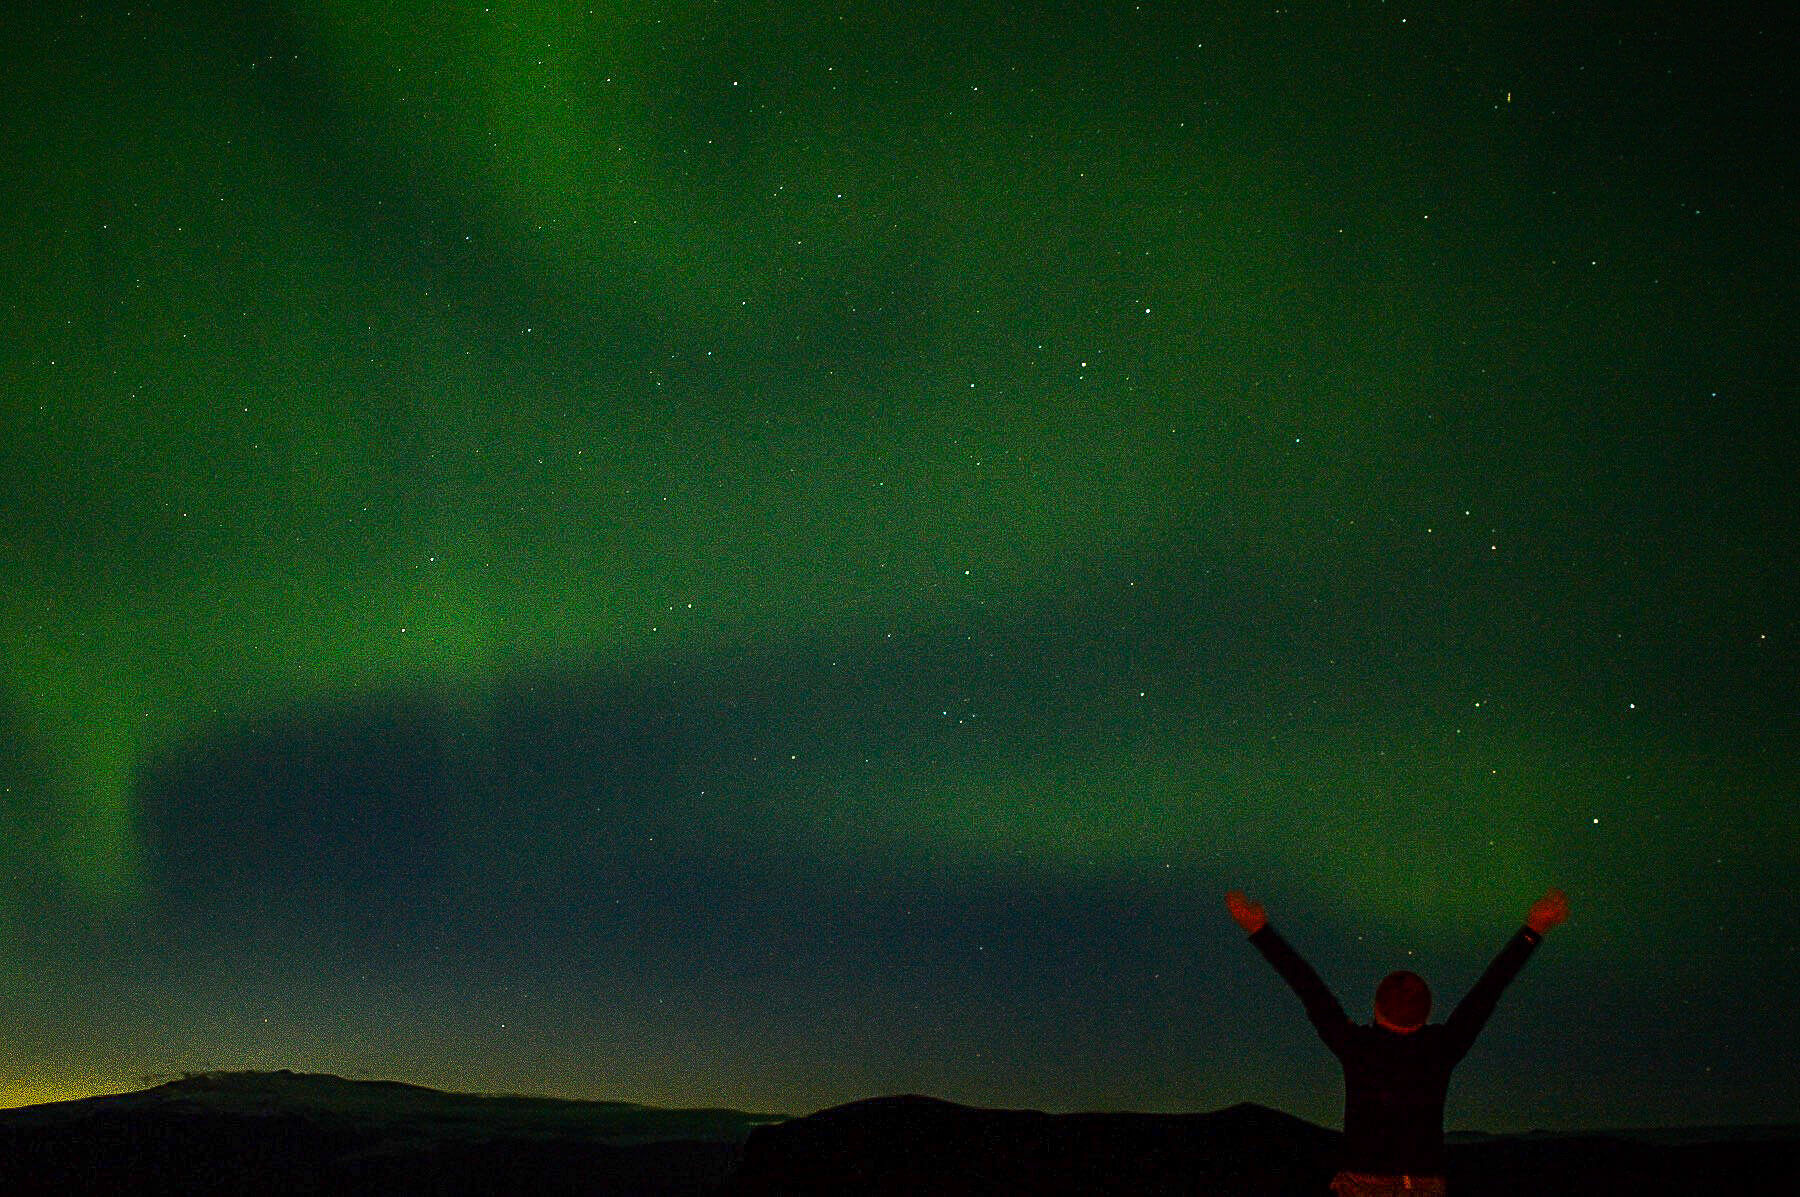 A girl with her arms up in front of the Northern Lights